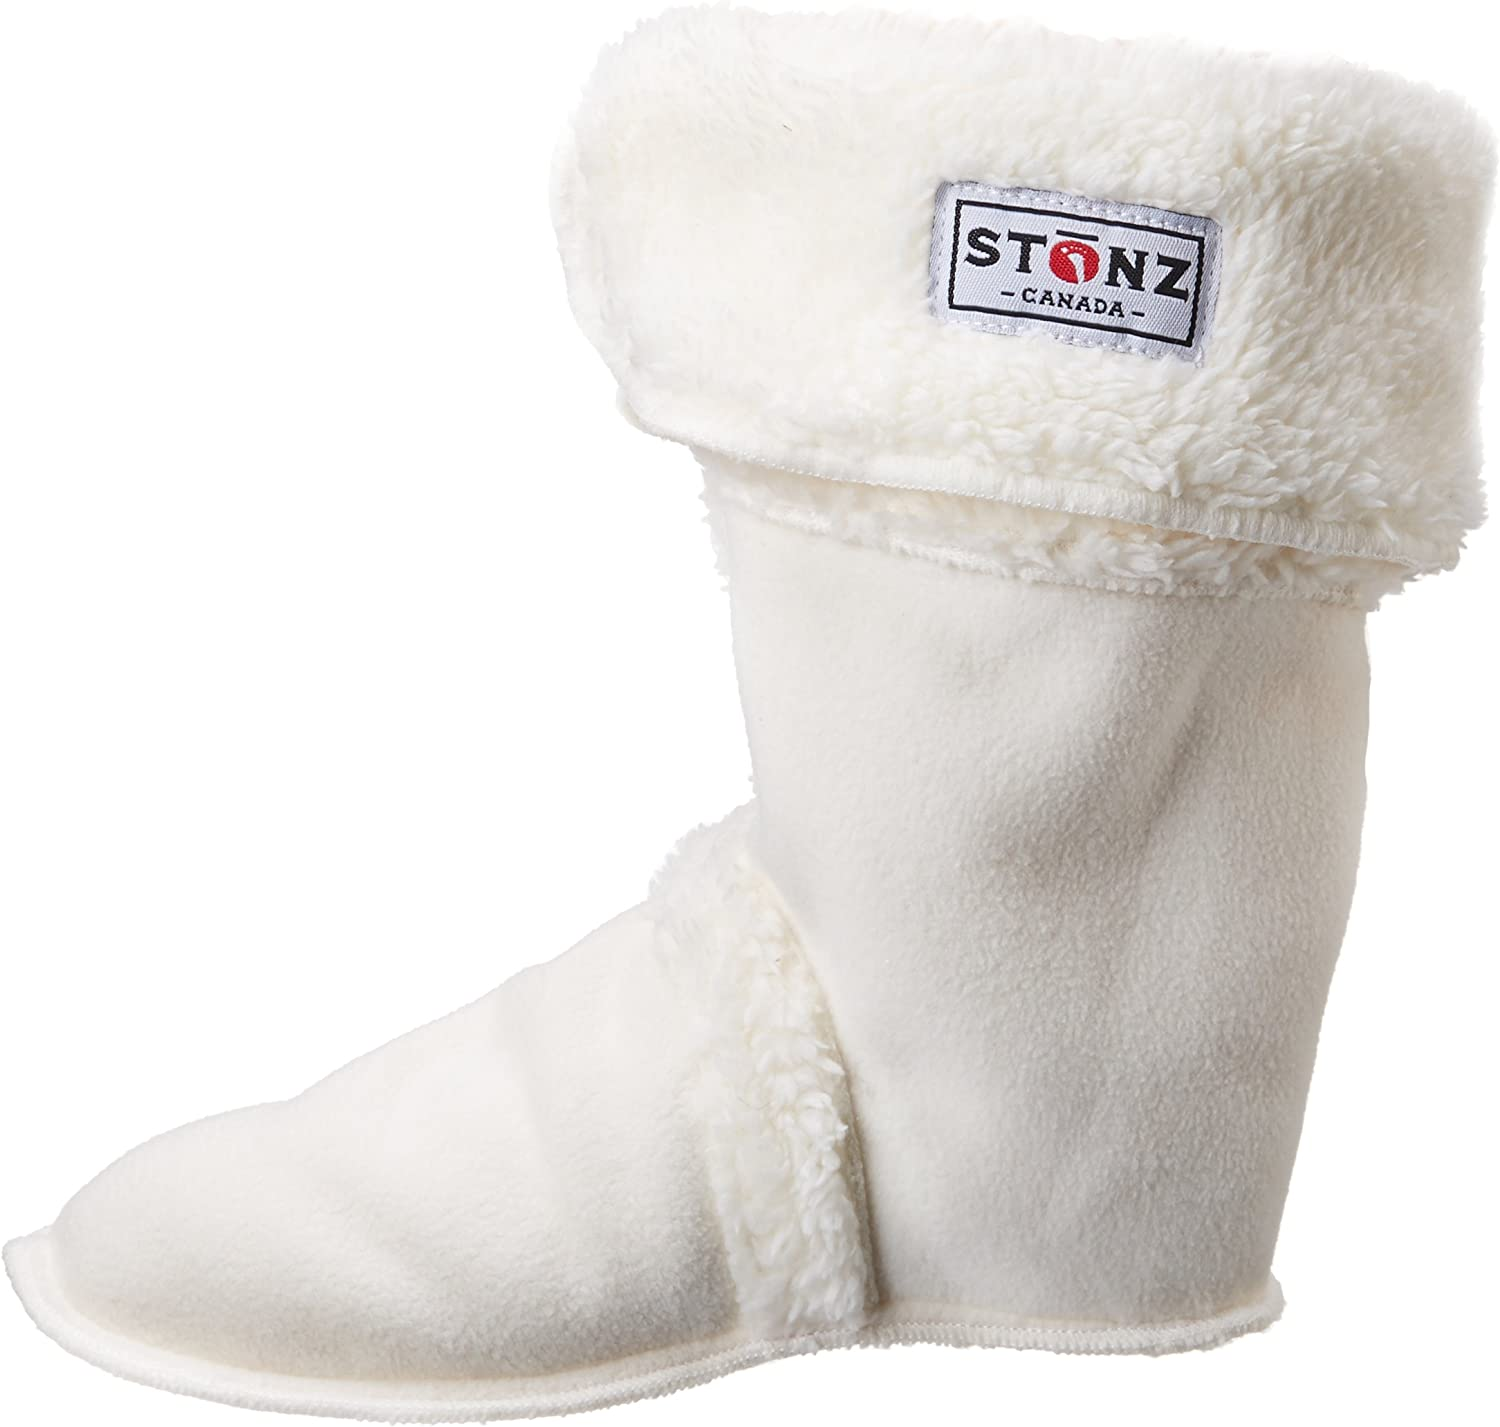 Stonz Liner Insert for Rain Boots Fits Most Brands